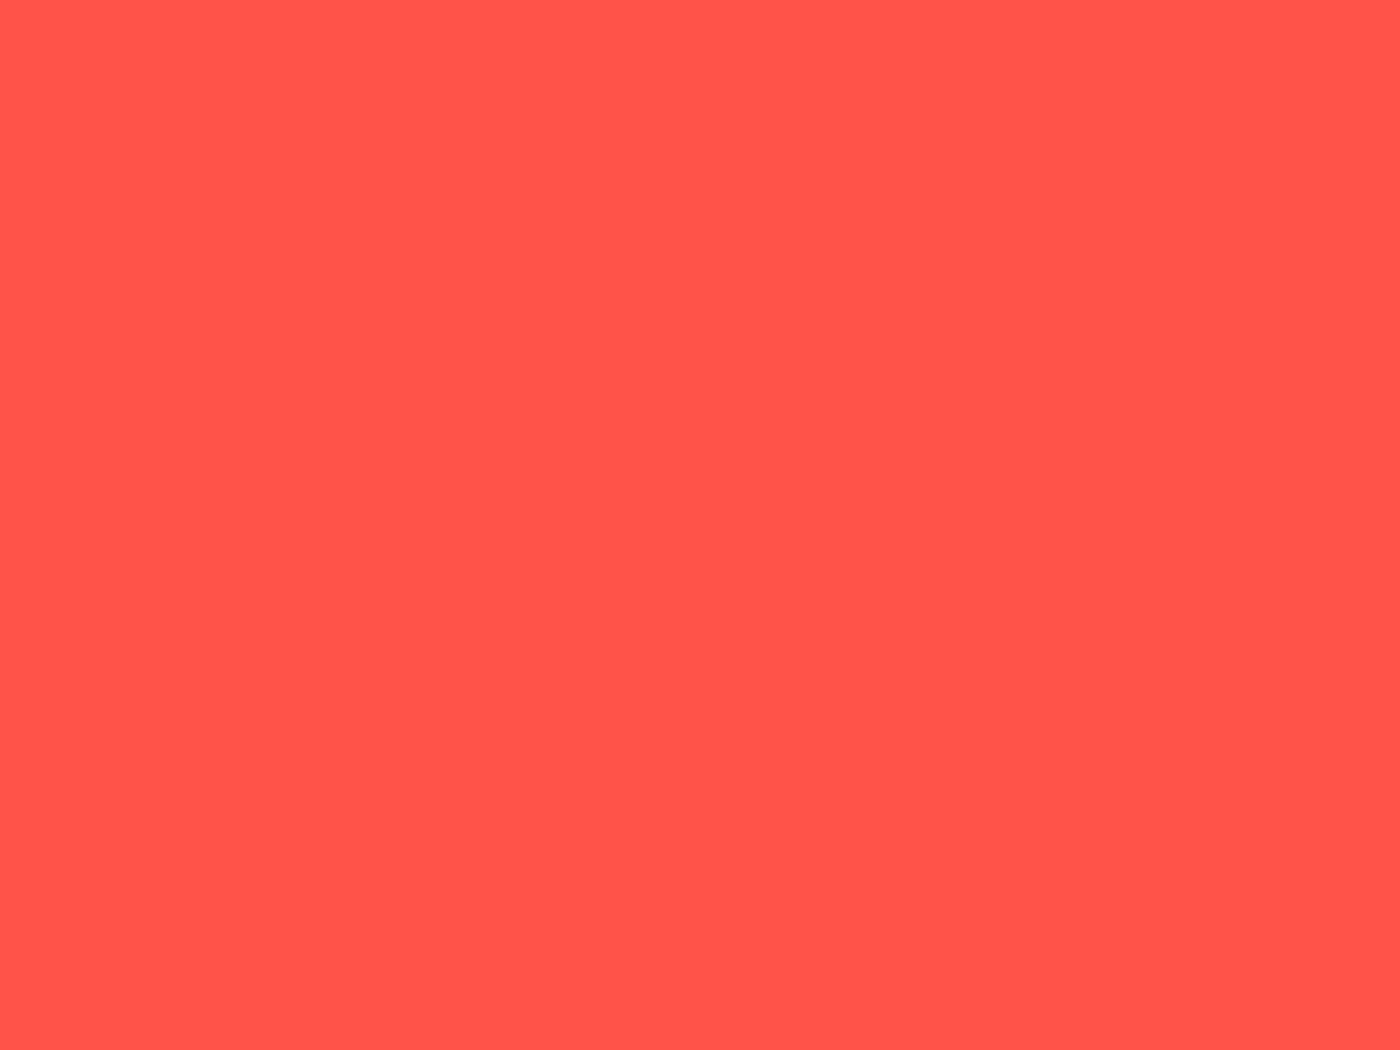 1400x1050 Red-orange Solid Color Background